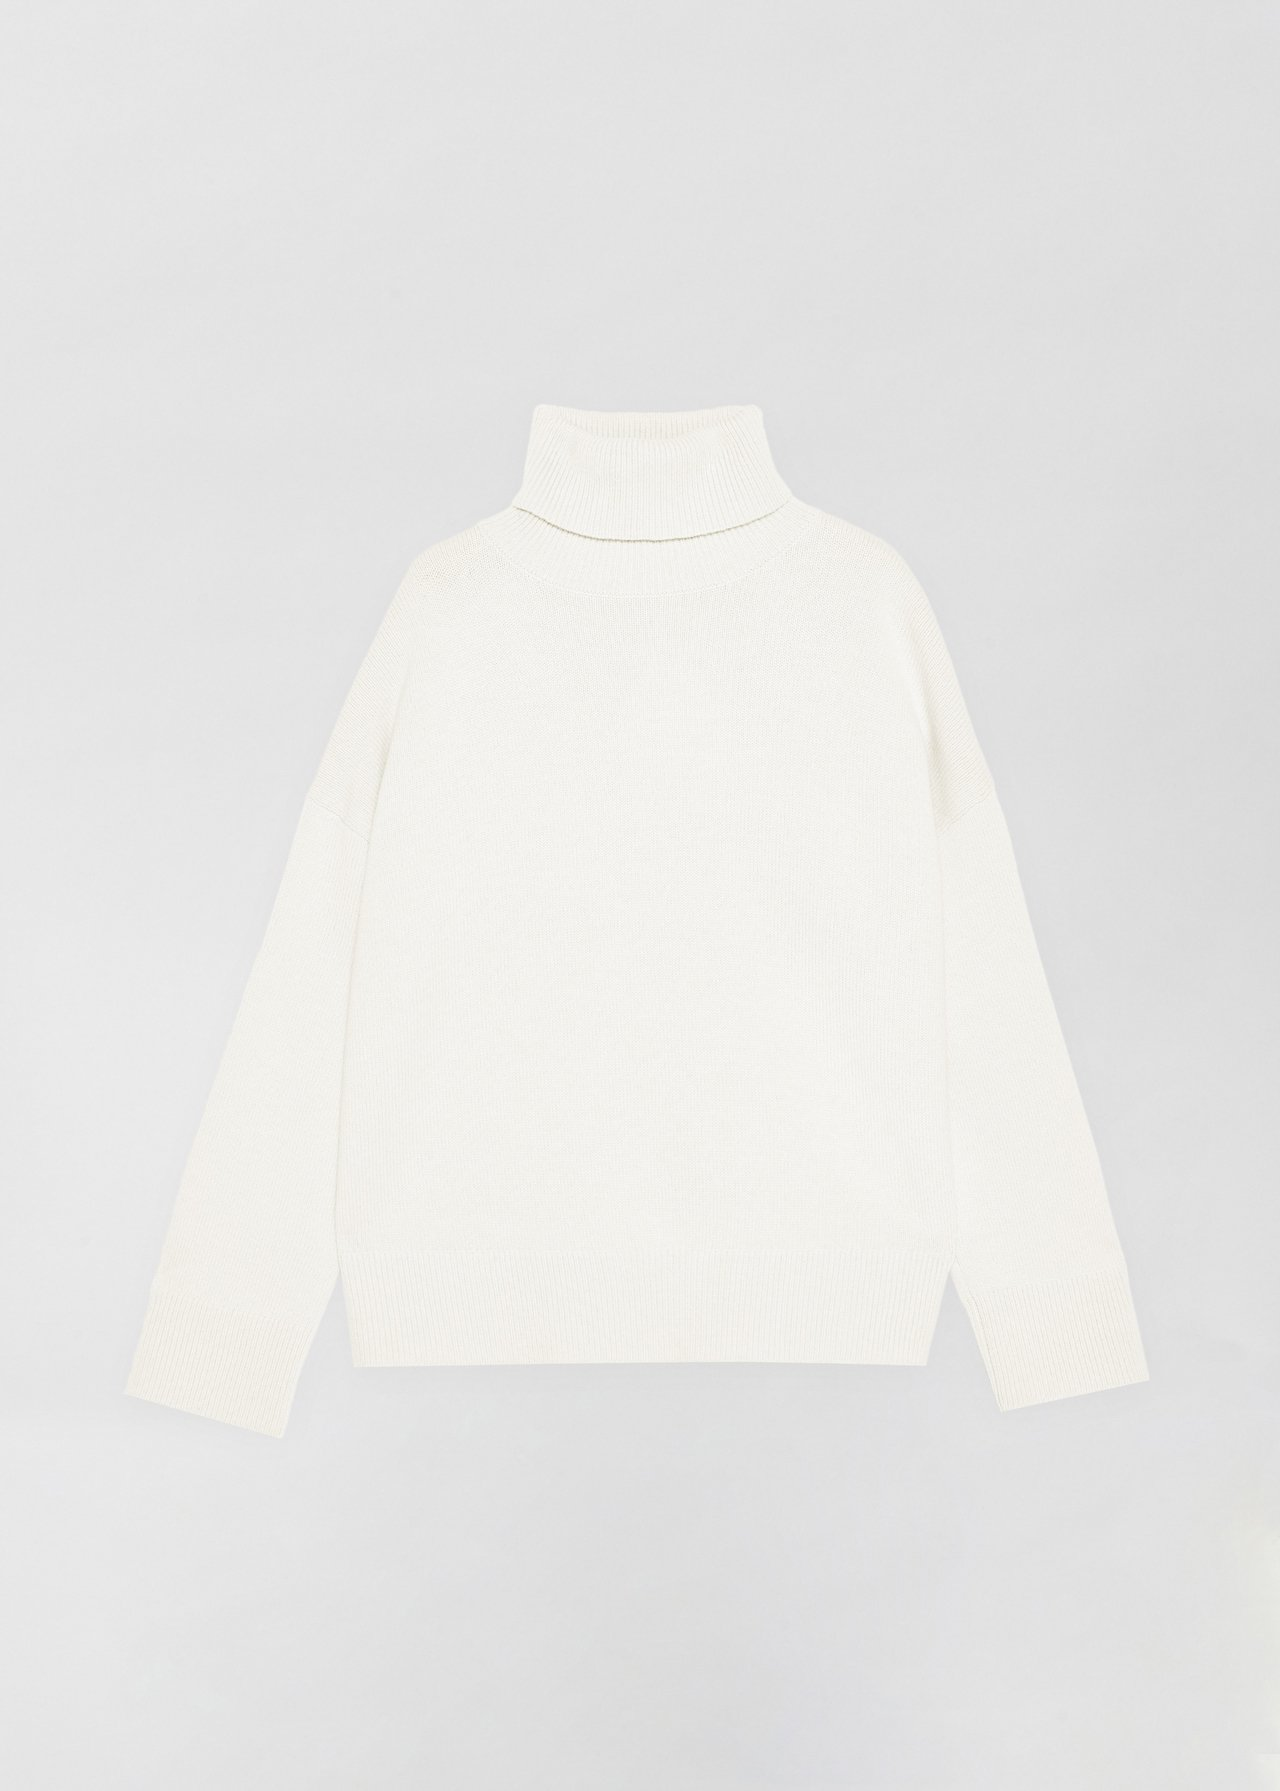 Boxy Turtleneck Sweater - Grey in Ivory by Co Collections